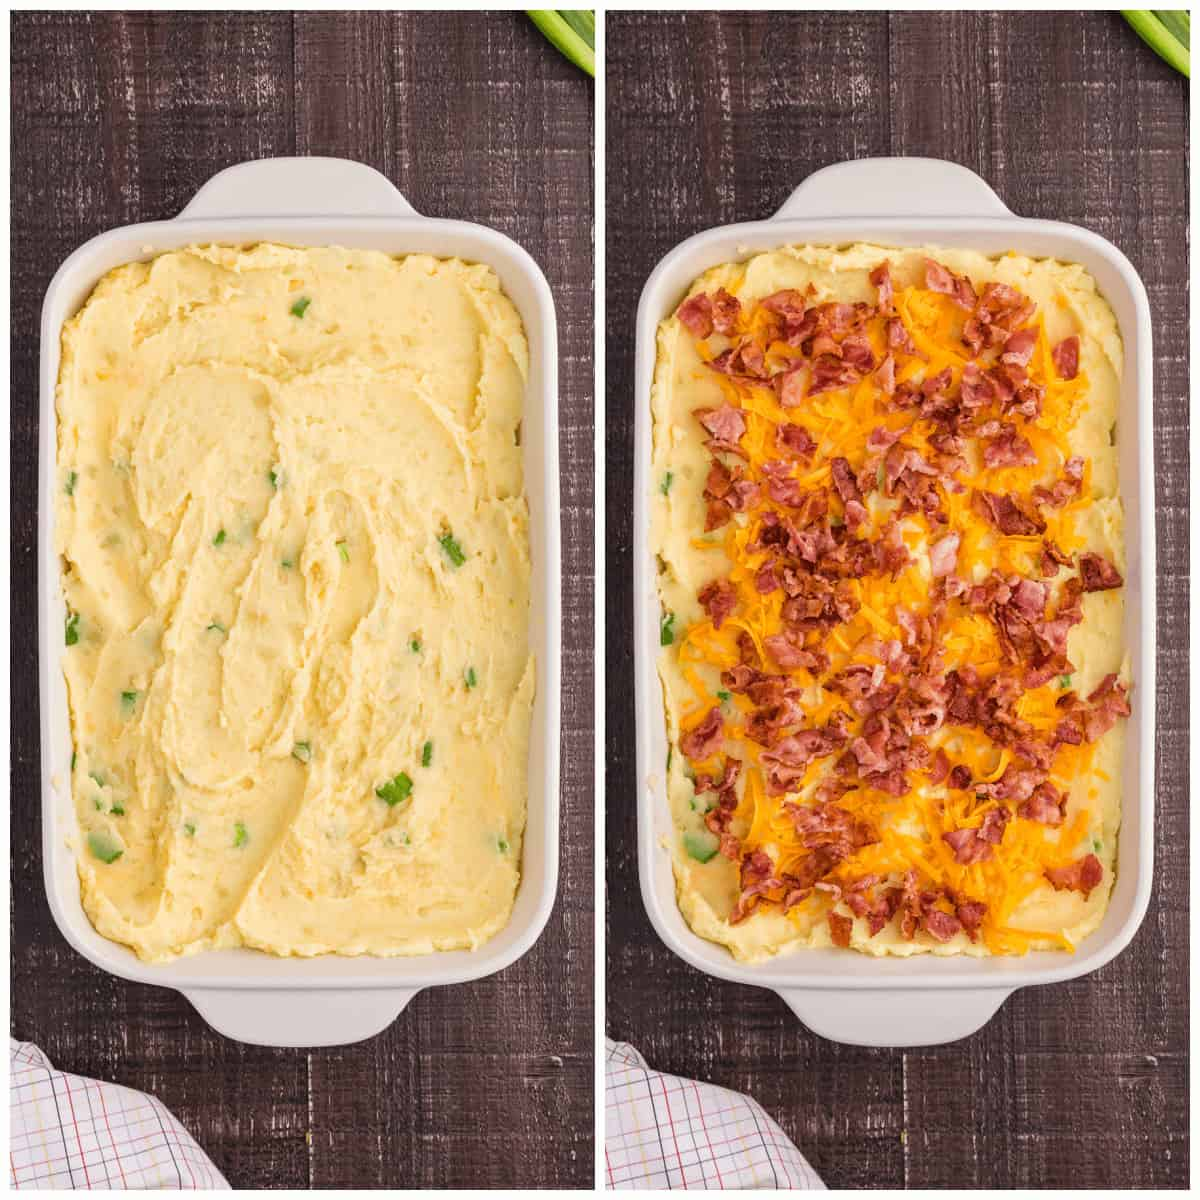 Making Loaded Mashed Potatoes